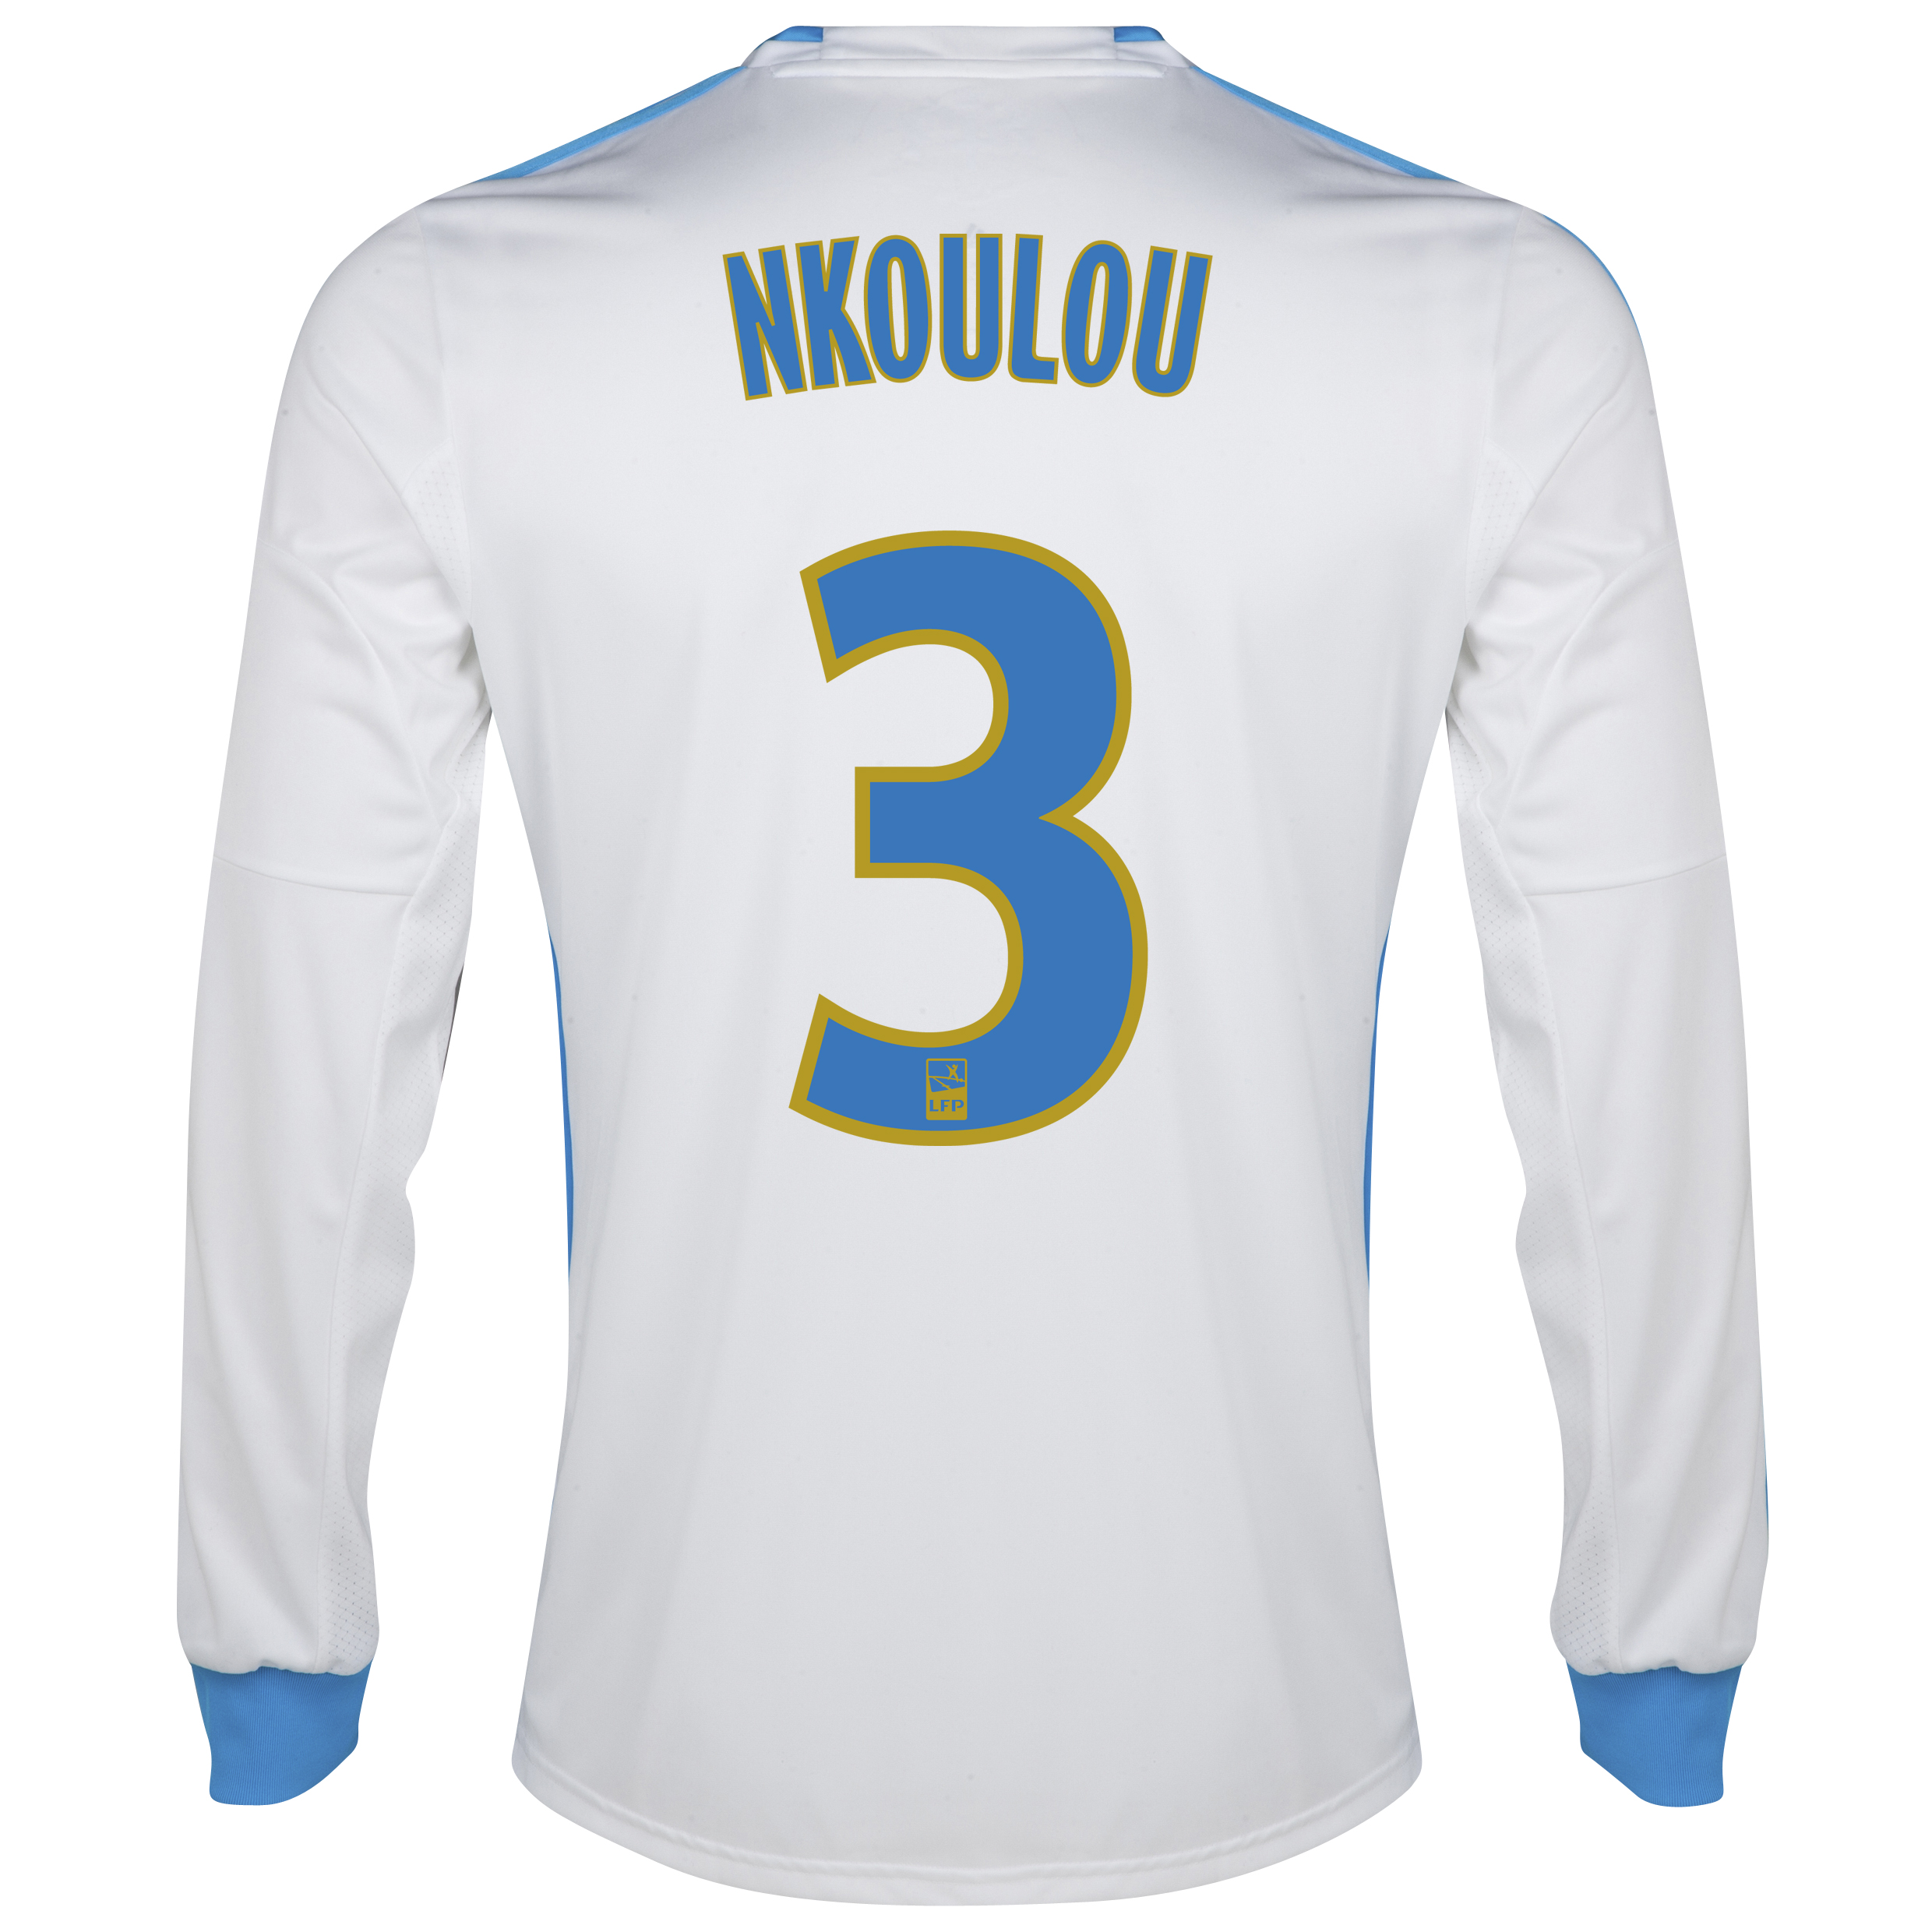 Olympique De Marseille Home Shirt LS 2013/14 - Mens White with Nkoulou 3 printing